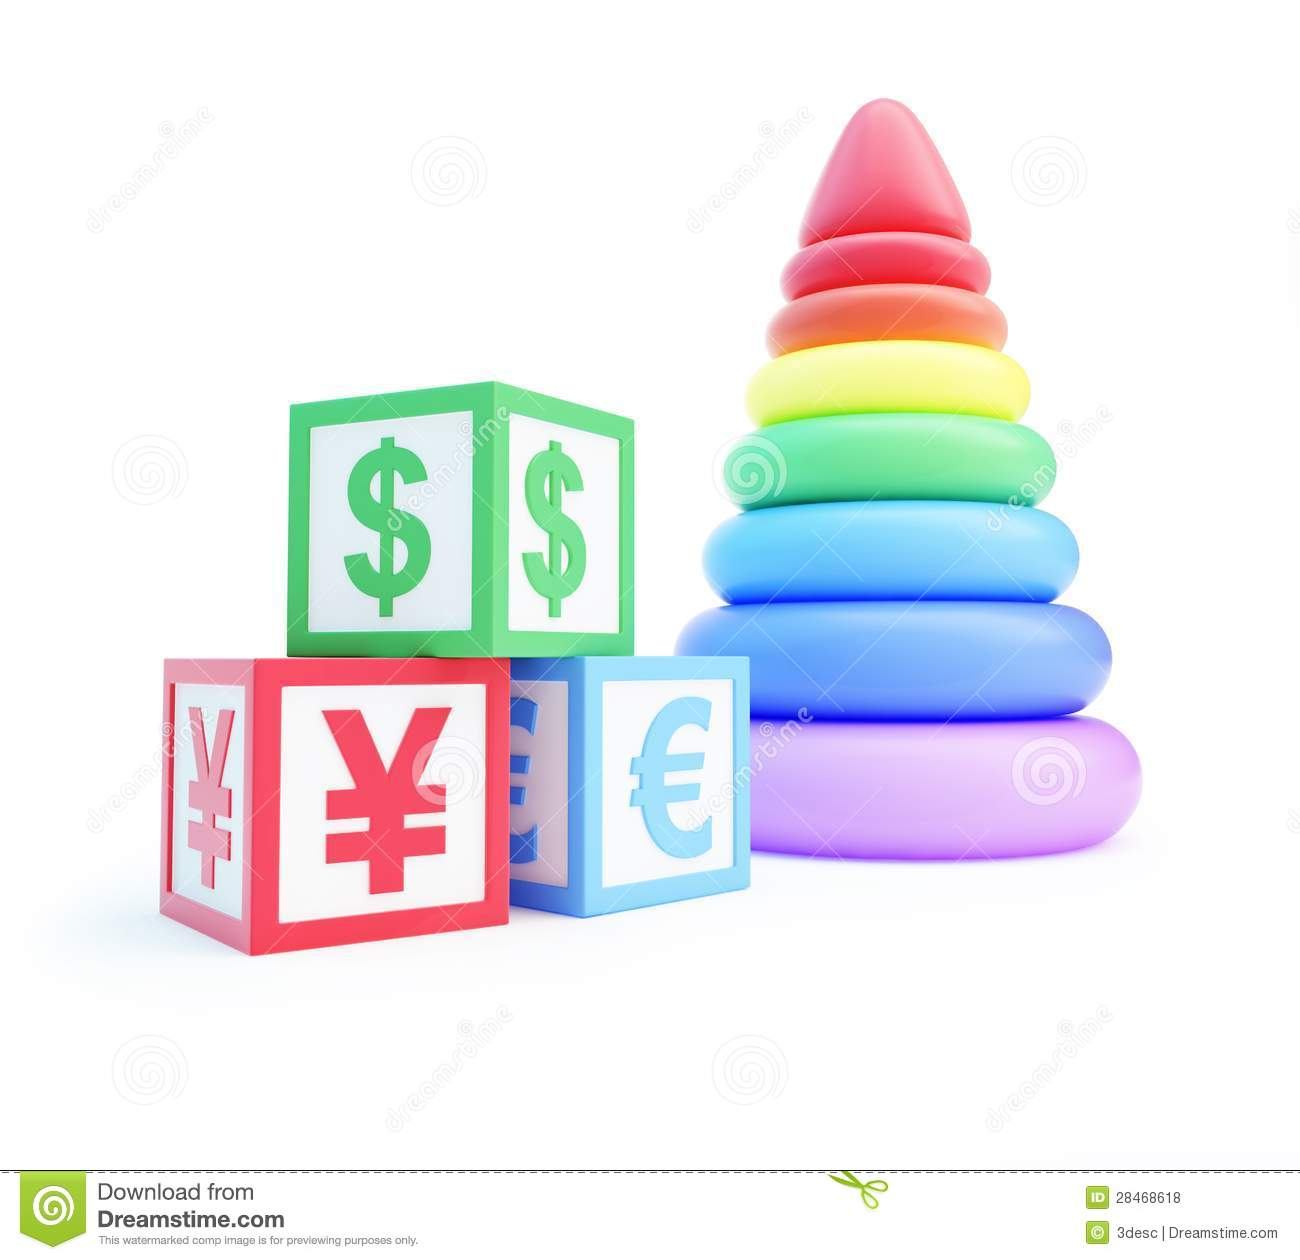 Finance Sign: Alphabet Cube Finance Sign Royalty-Free Stock Photography